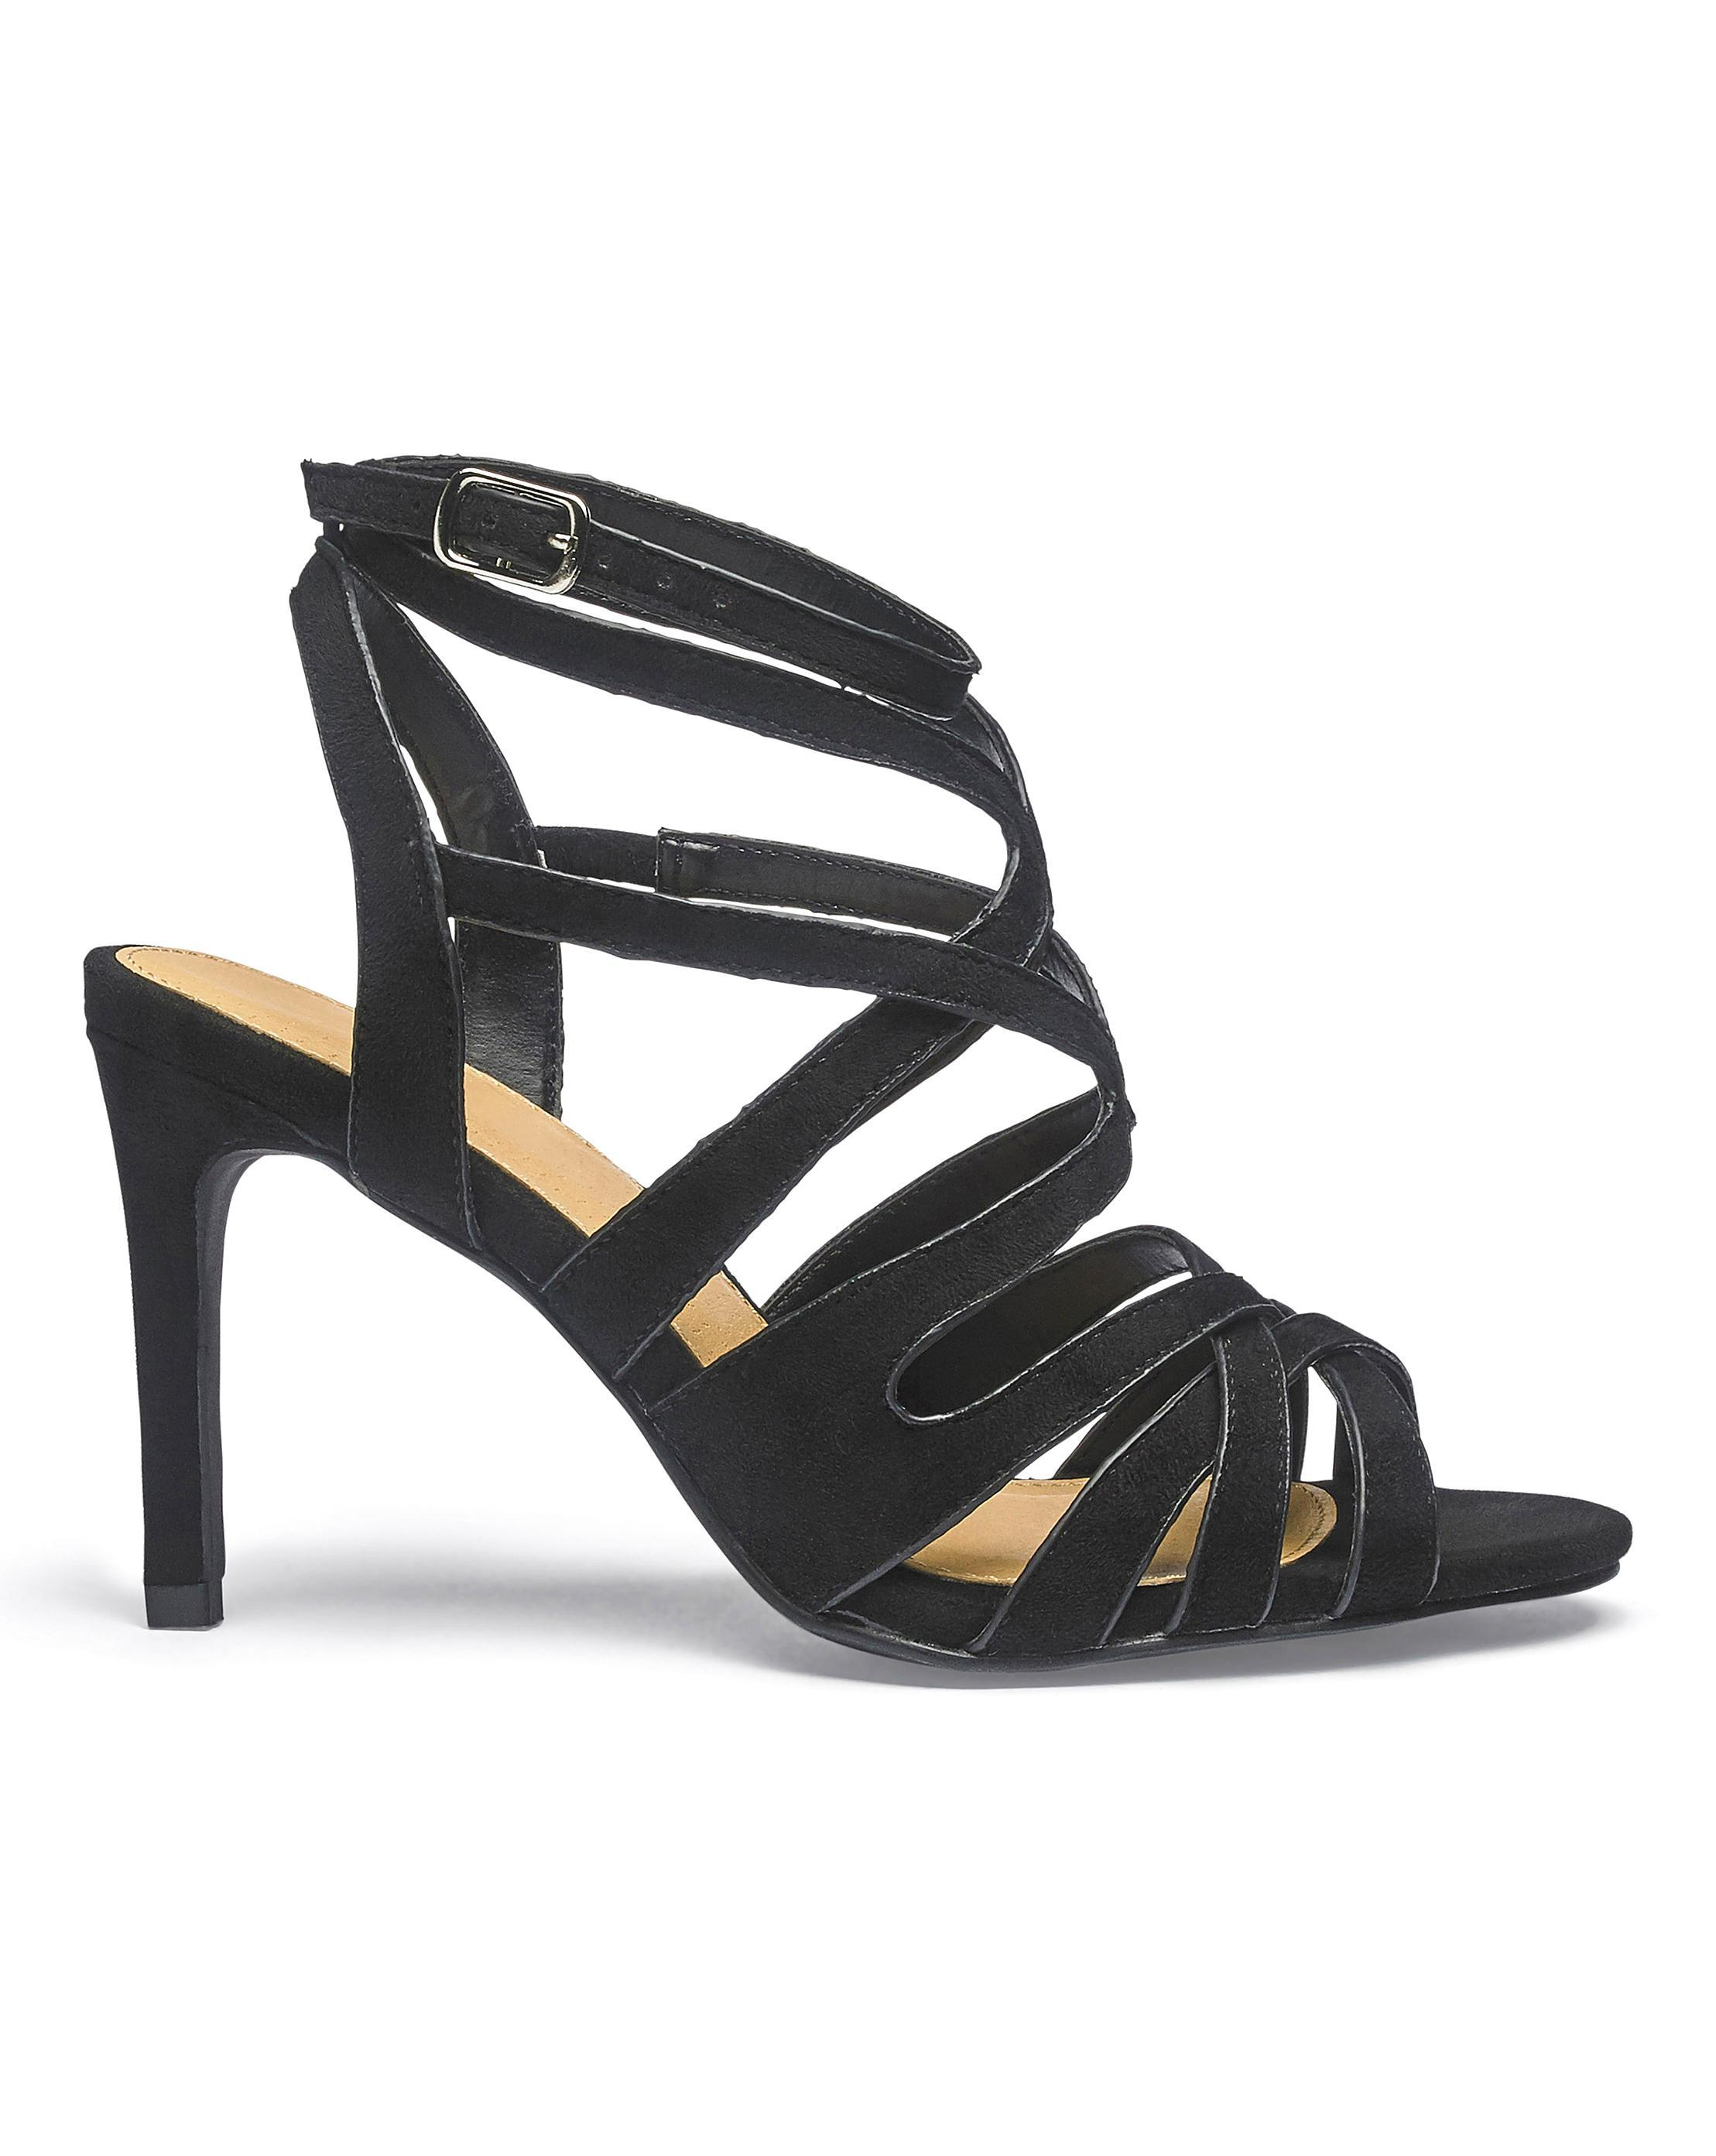 d6cd0a2e45b Lyst - Simply Be Kristen Cage Sandal Extra Wide Fit in Black